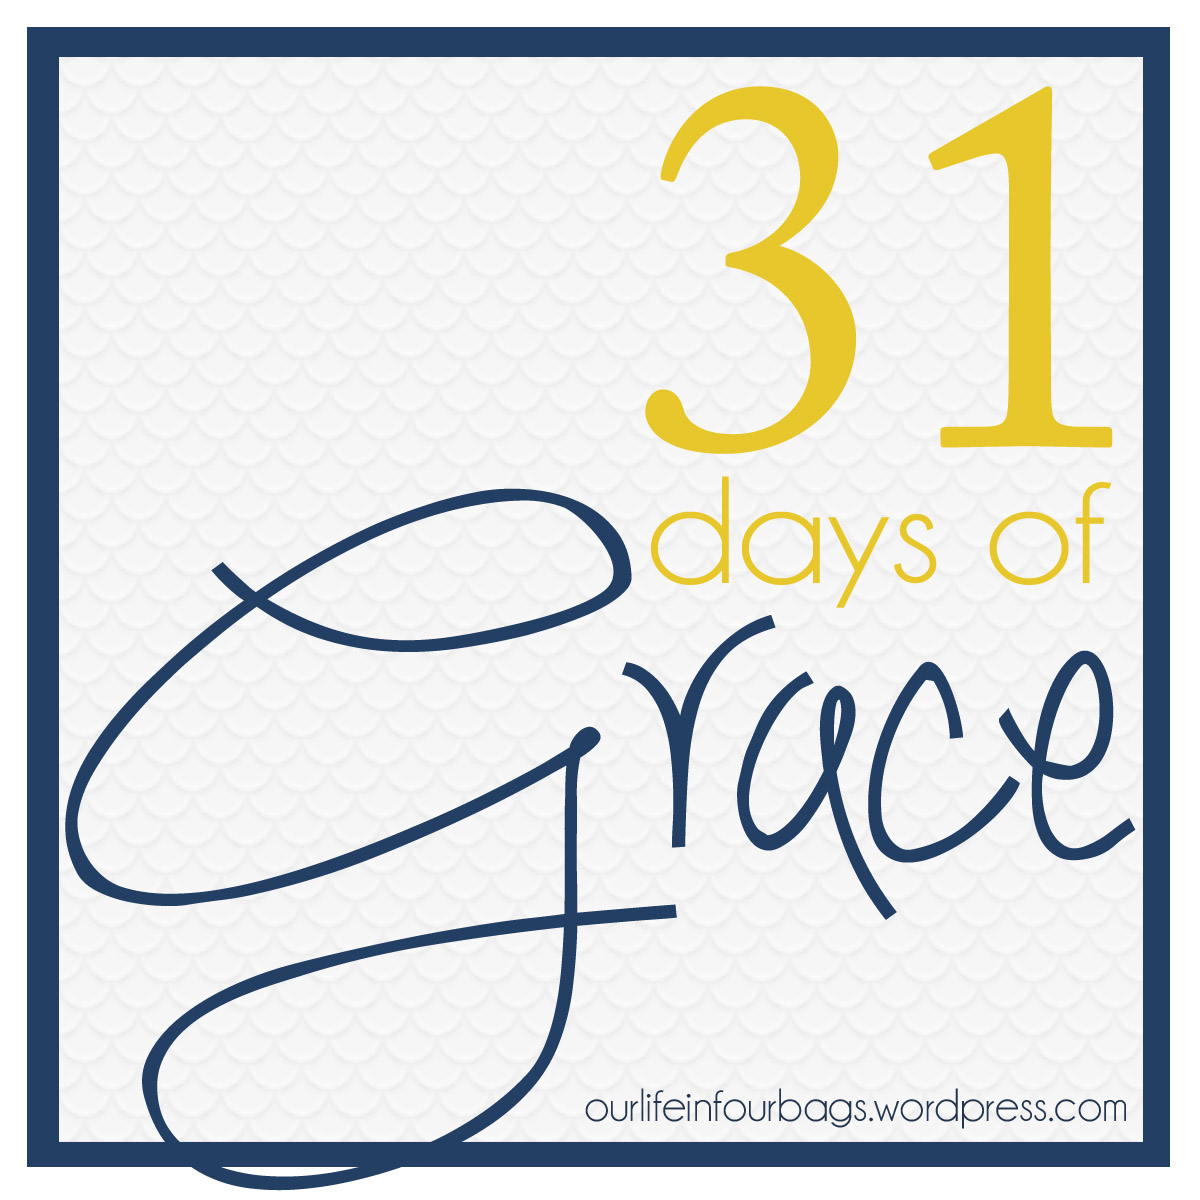 31 days of grace